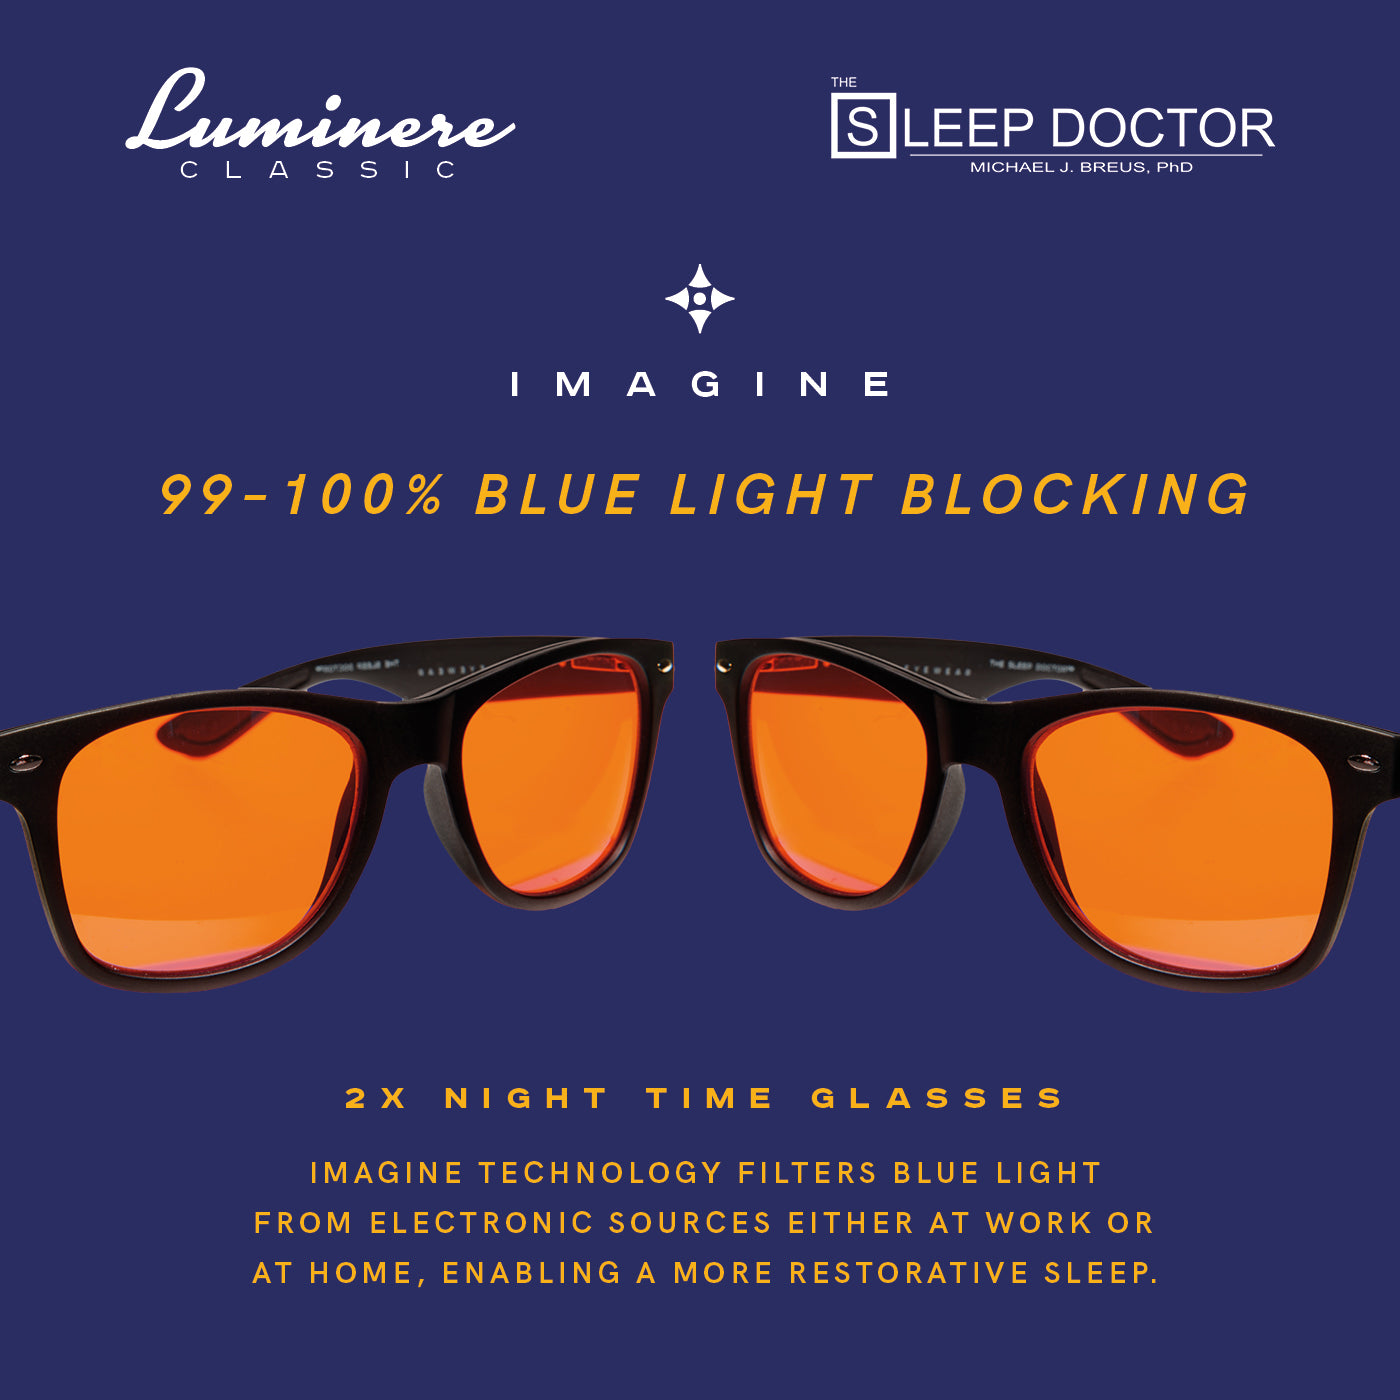 LUMINERE BLUE LIGHT BLOCKING GLASSES - DR MICHAEL BREUS